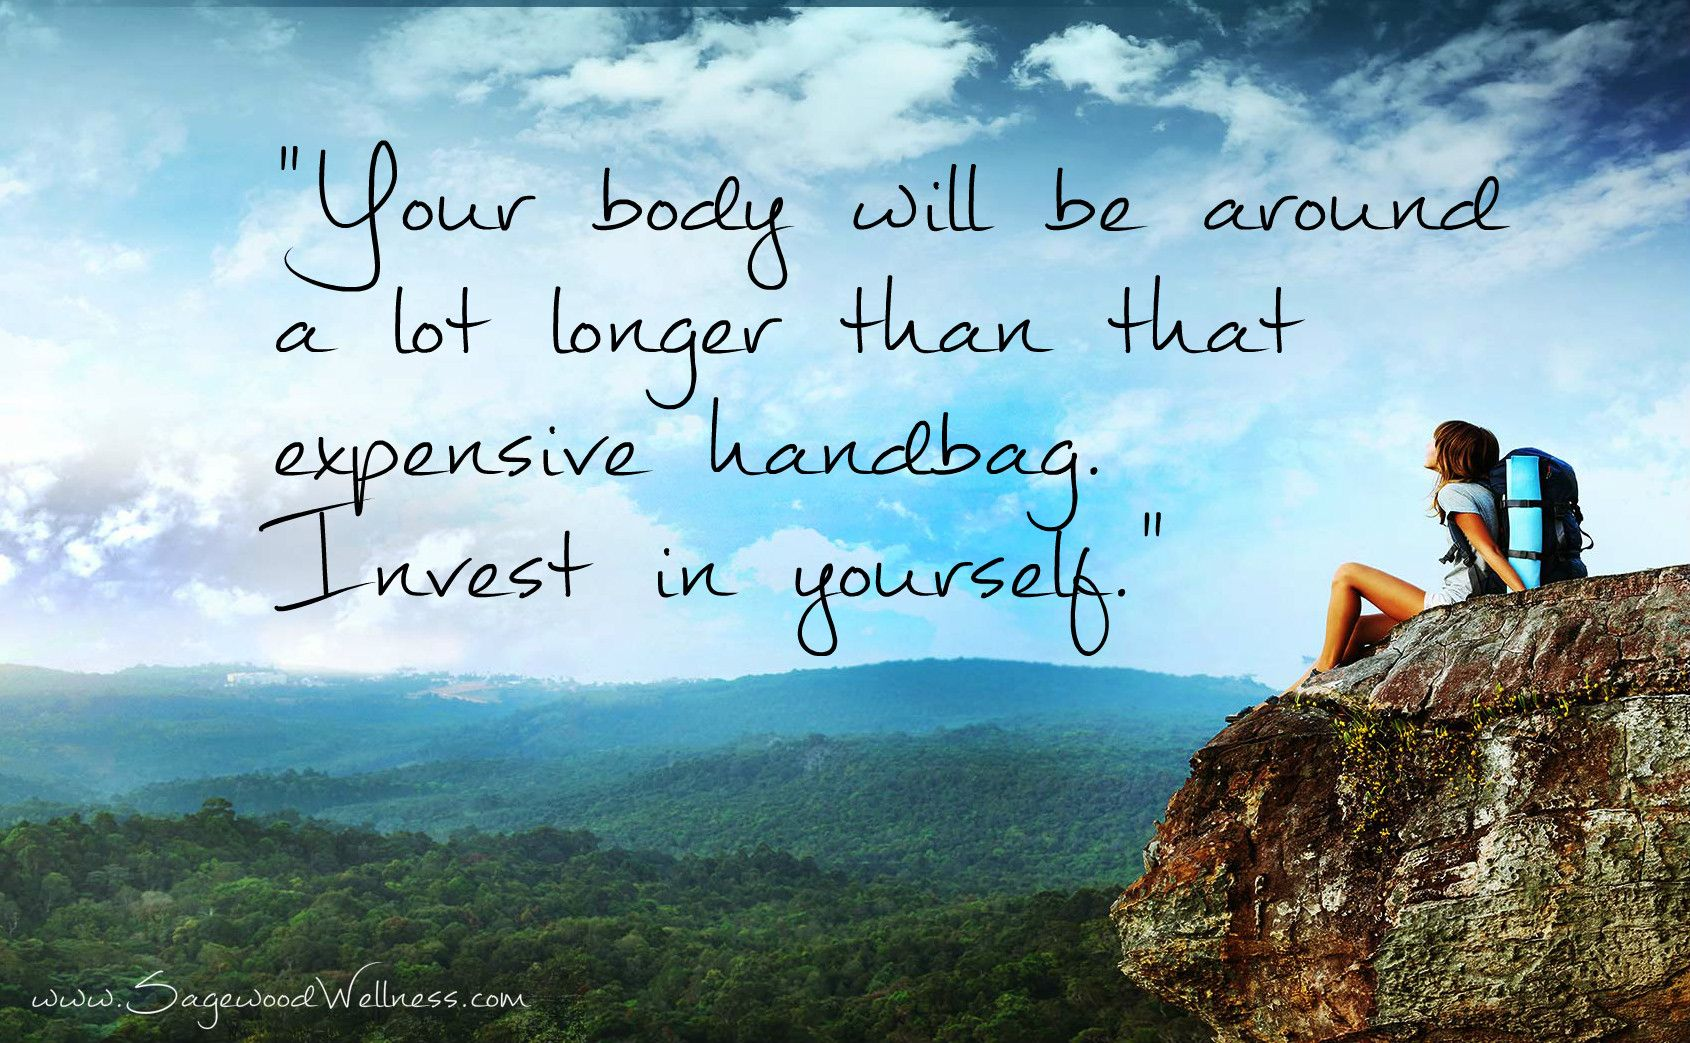 Wellness Quotes Health & Wellness Quotes  Invest In Yourself  Sagewood Wellness .